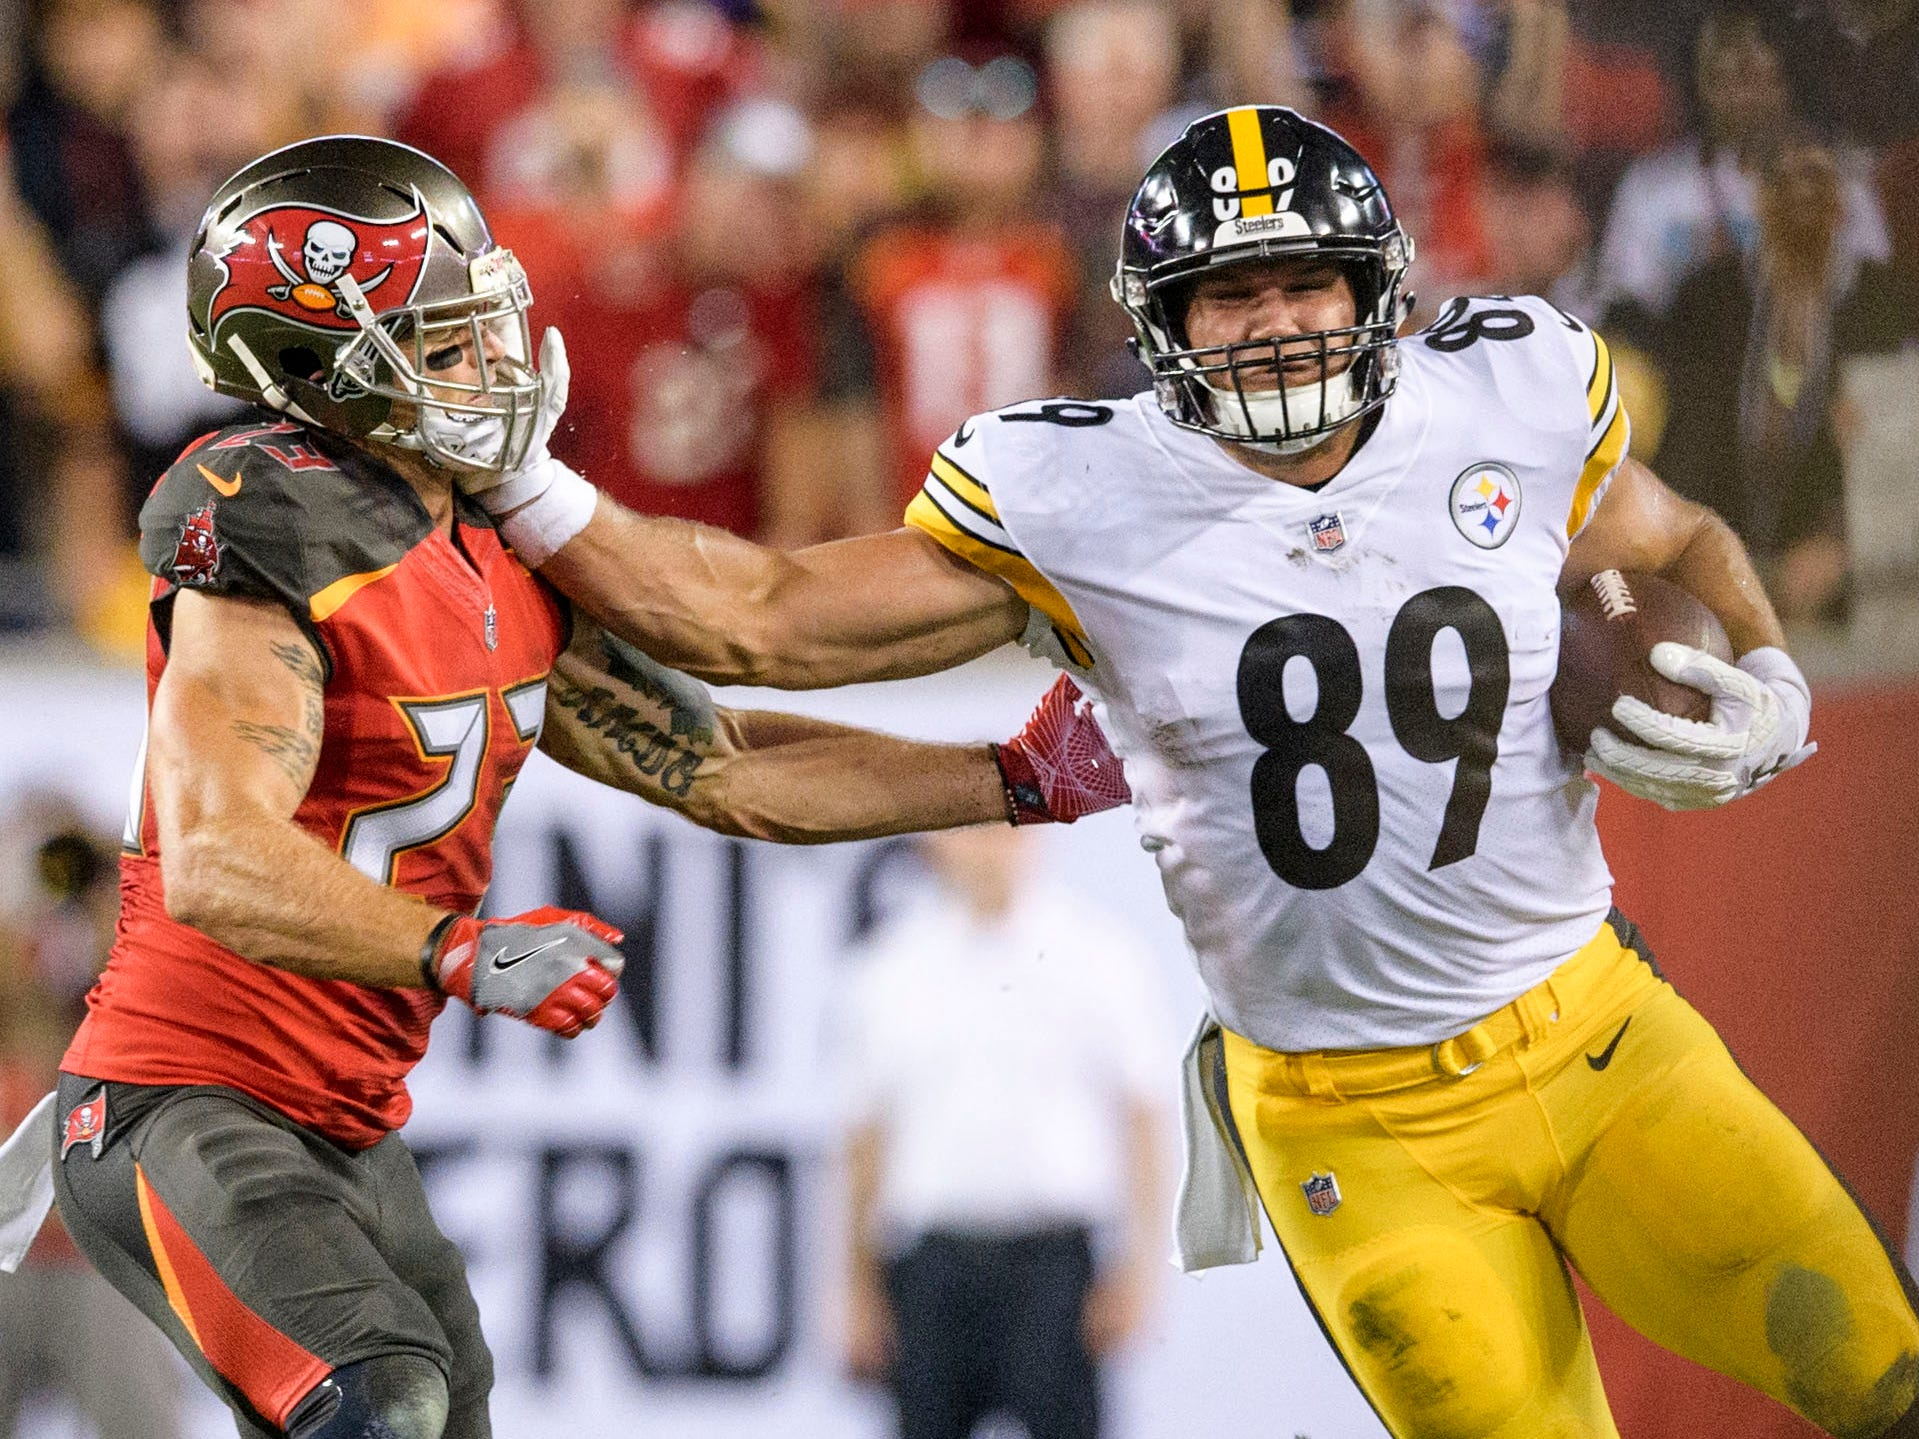 Pittsburgh Steelers tight end Vance McDonald stiff arms Tampa Bay Buccaneers safety Chris Conte en route to a touchdown during the first half at Raymond James Stadium.